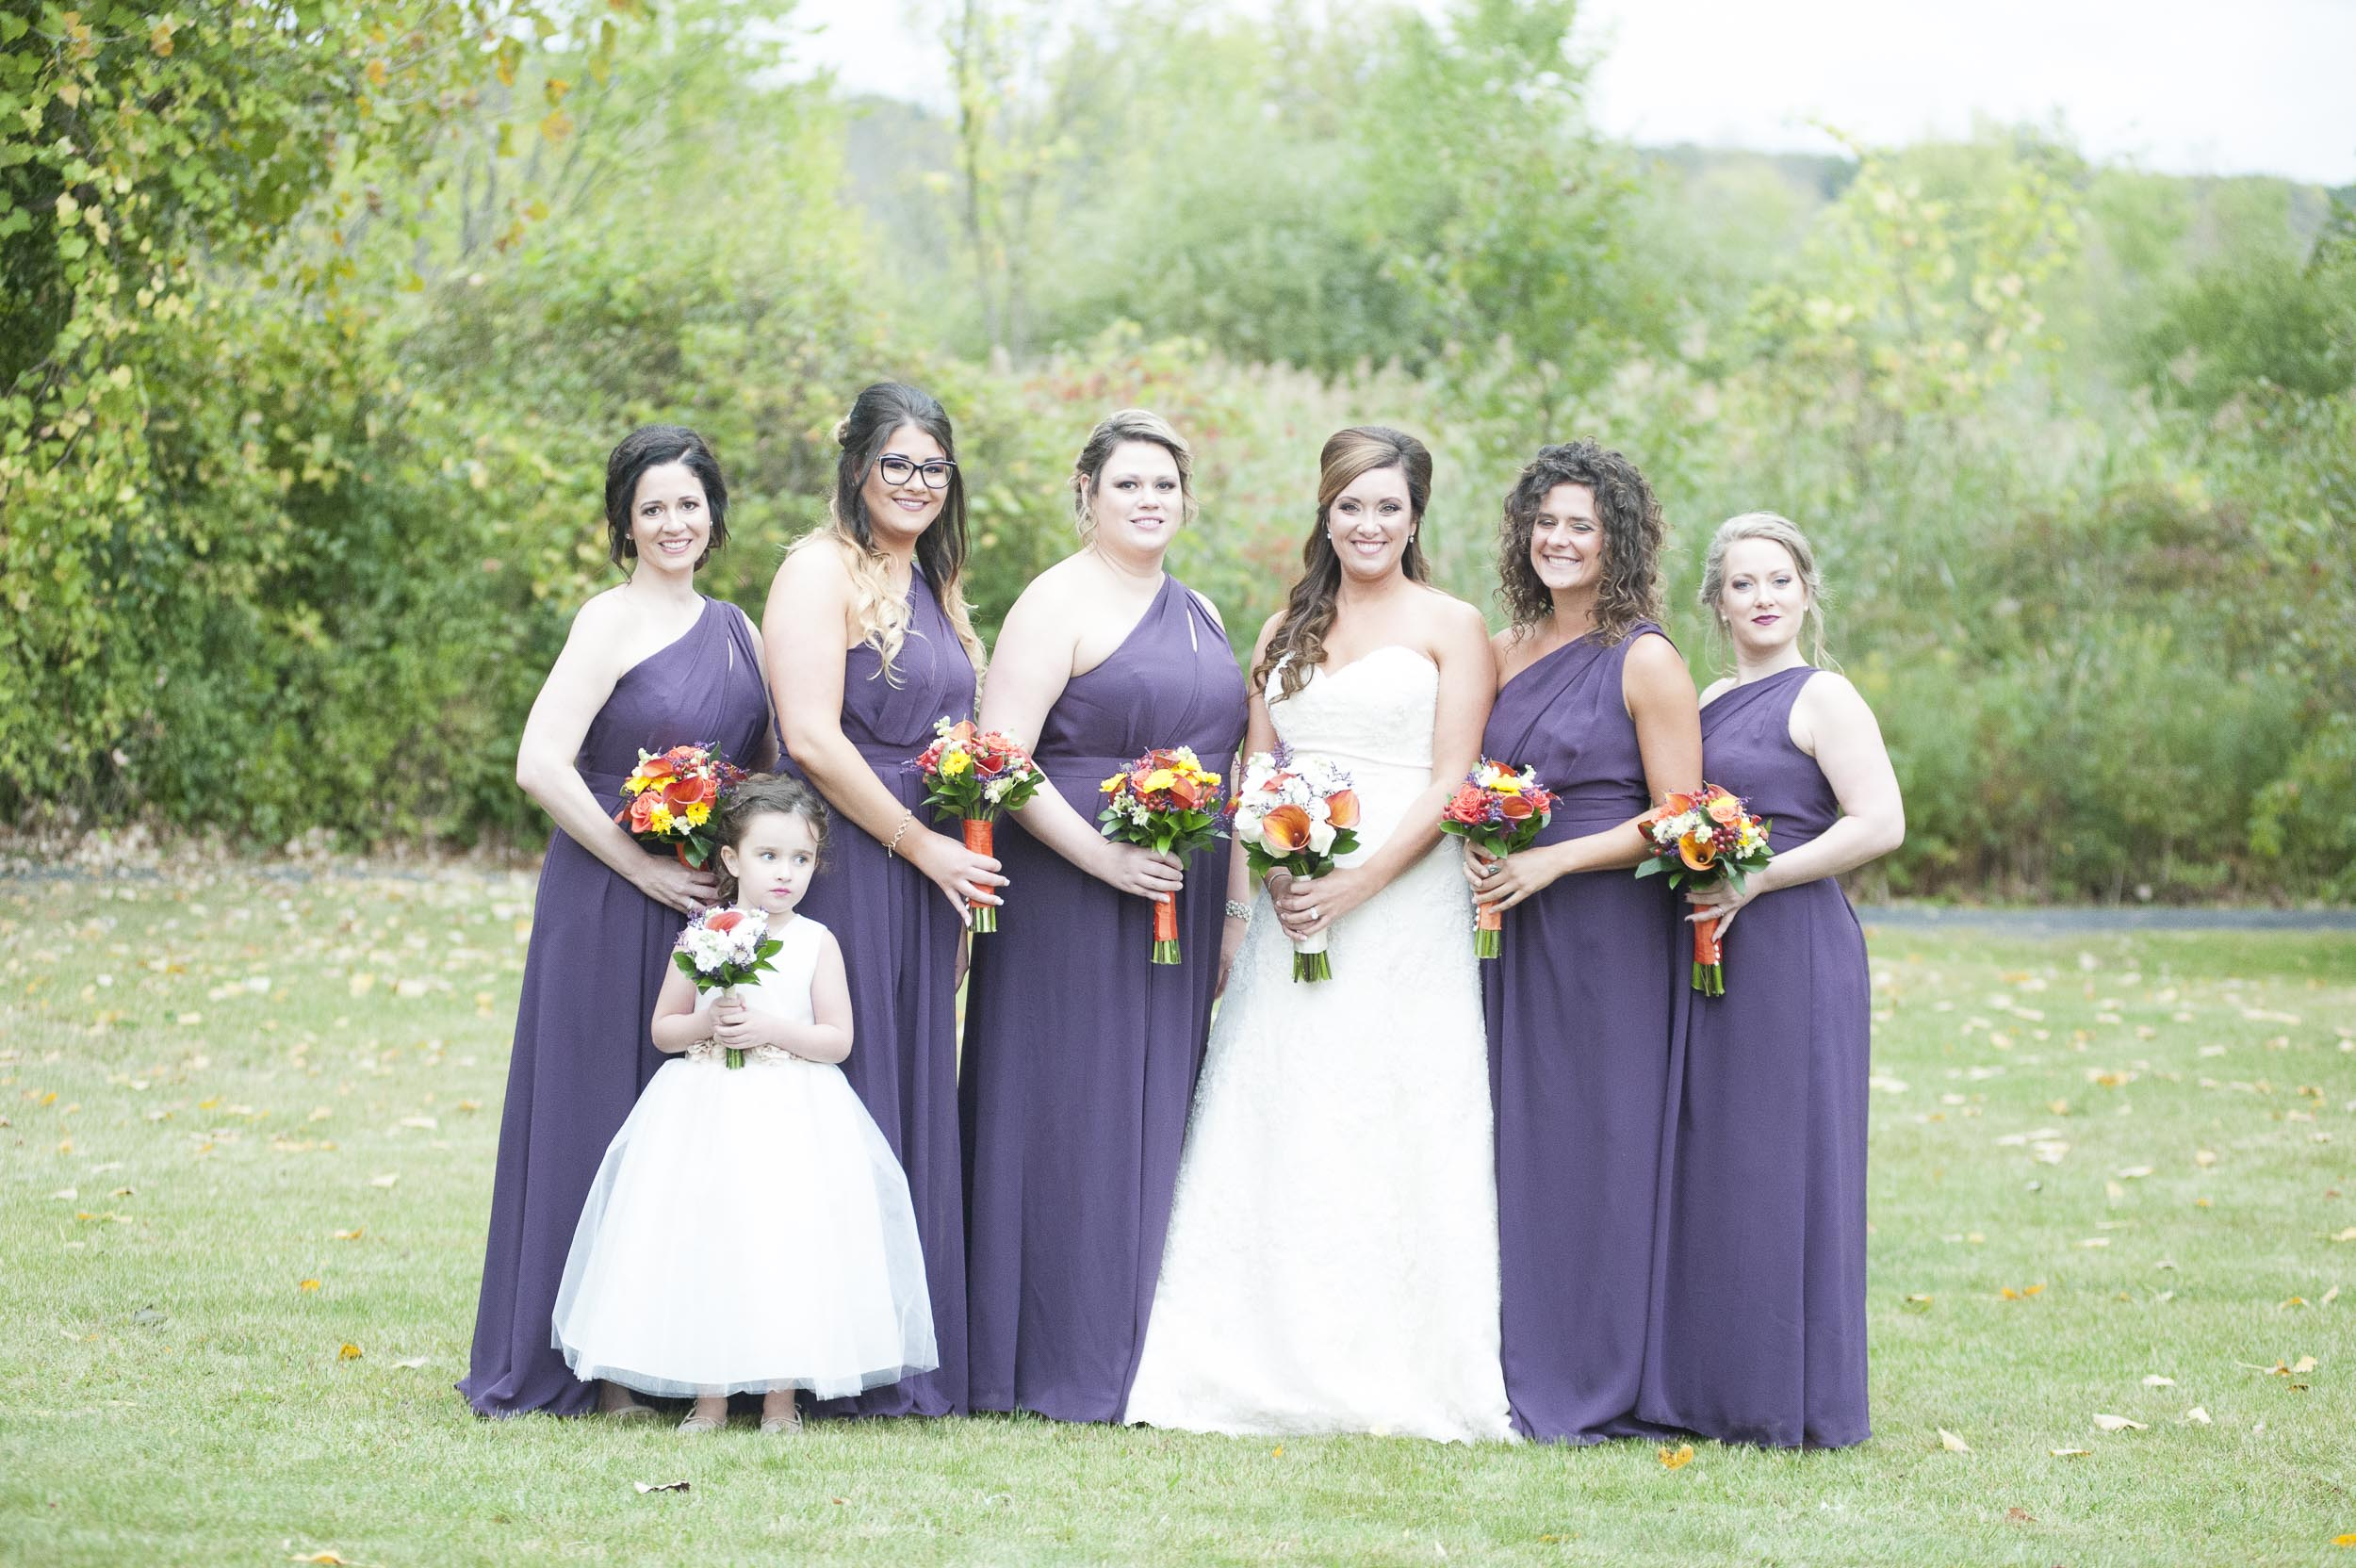 In this 3rd image, the bridesmaid 2nd from the right closed her eyes.